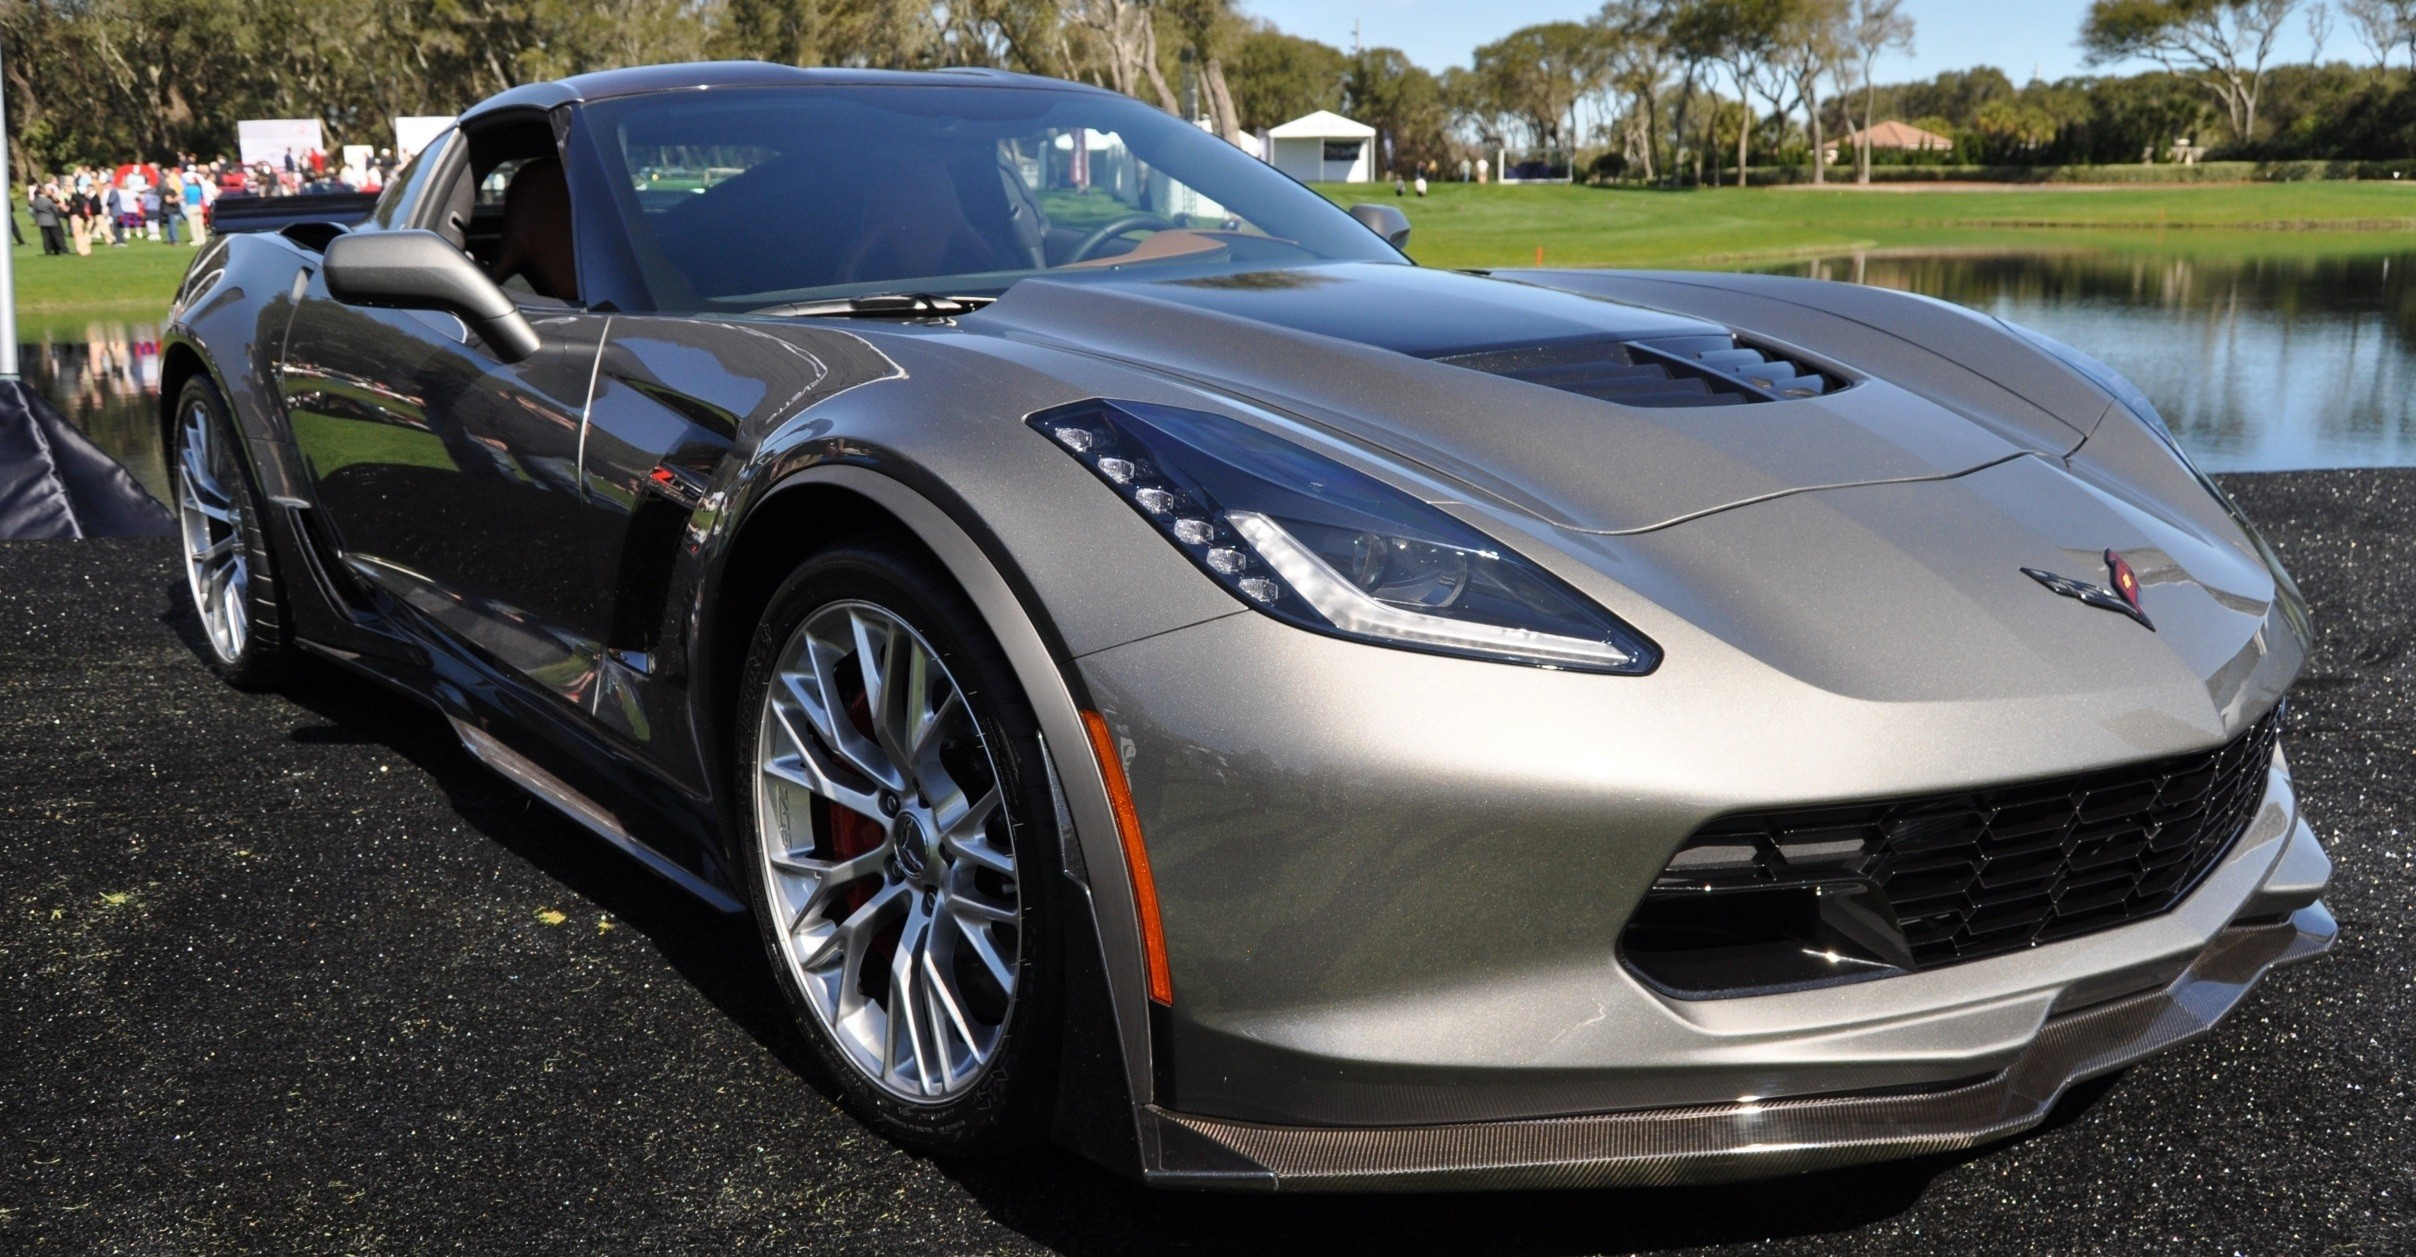 2015 Z06 -- First Outdoor Showing -- Forthcoming Chevrolet Corvette Track Monster Holds Still For 26 High-Res Photos 6